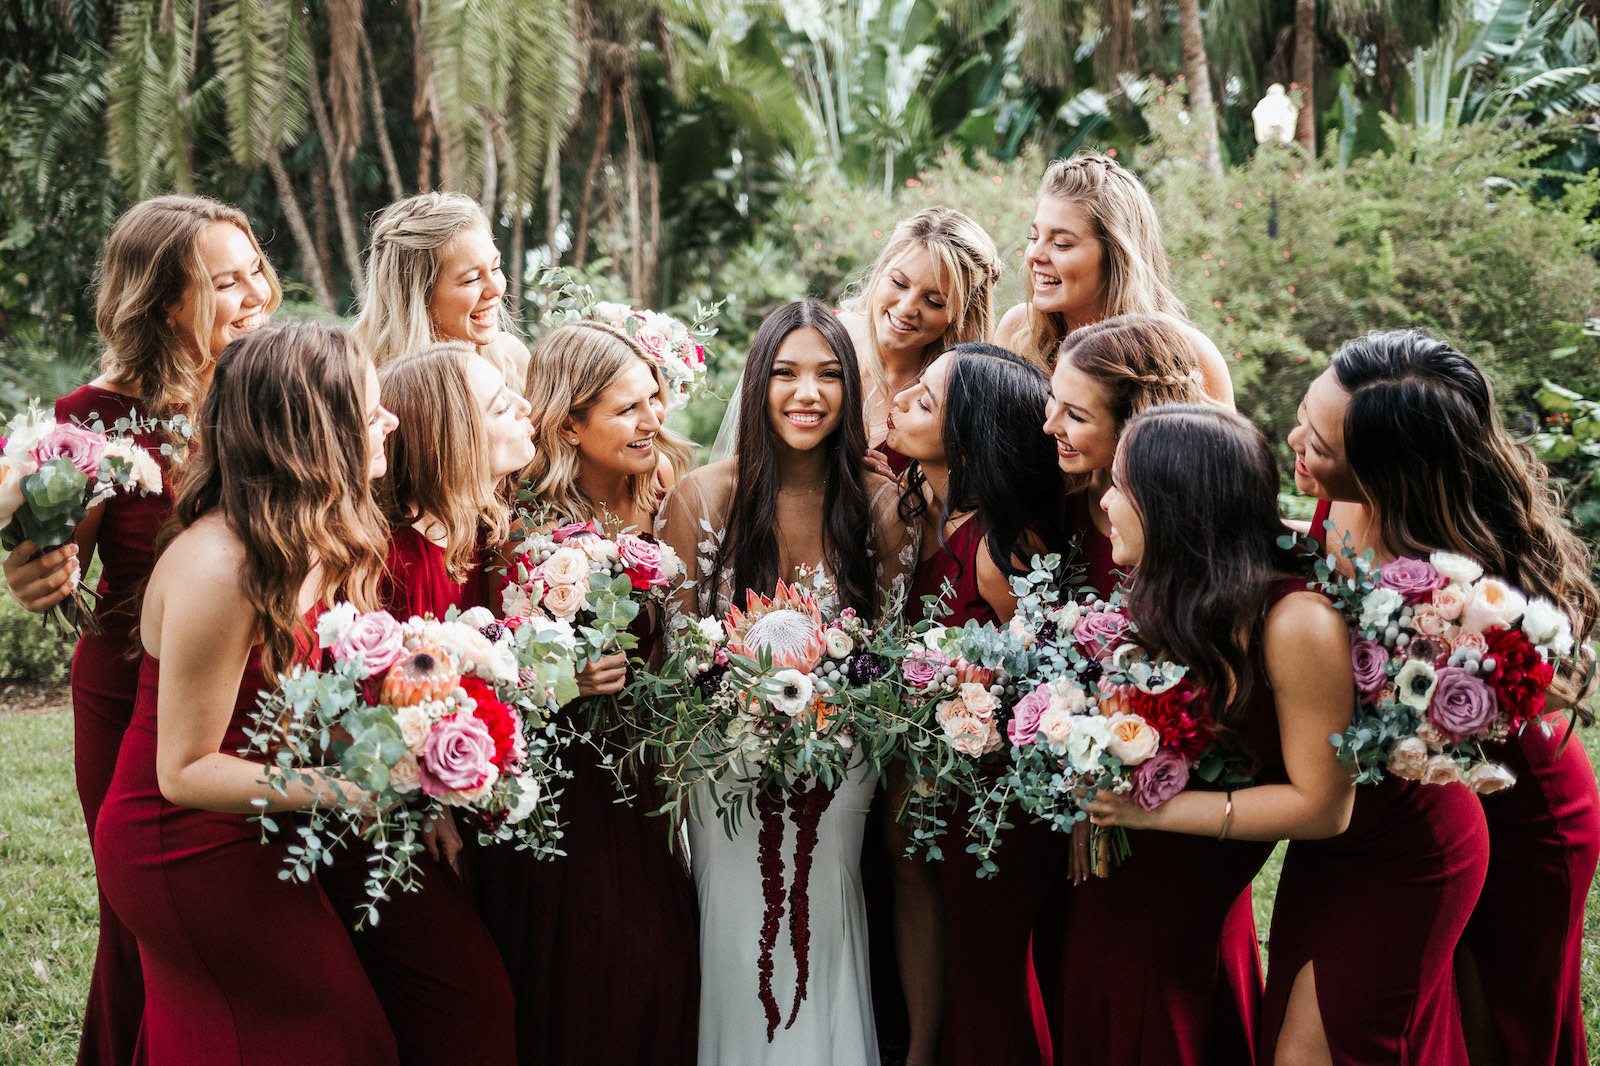 St. Petersburg Bride and Bridal Party, Holding Exotic Tropical Inspired Bridal Bouquet with Bright Pink King Protea, White, Dark Purple, Burgundy, Wine Florals with Greenery, Bridesmaids in Long Mismatched BHLDN Dresses in Dark Burgundy and Wine Color | Florida Wedding Florist Posies Flower Truck | Tampa Bay Wedding Planner John Campbell Weddings